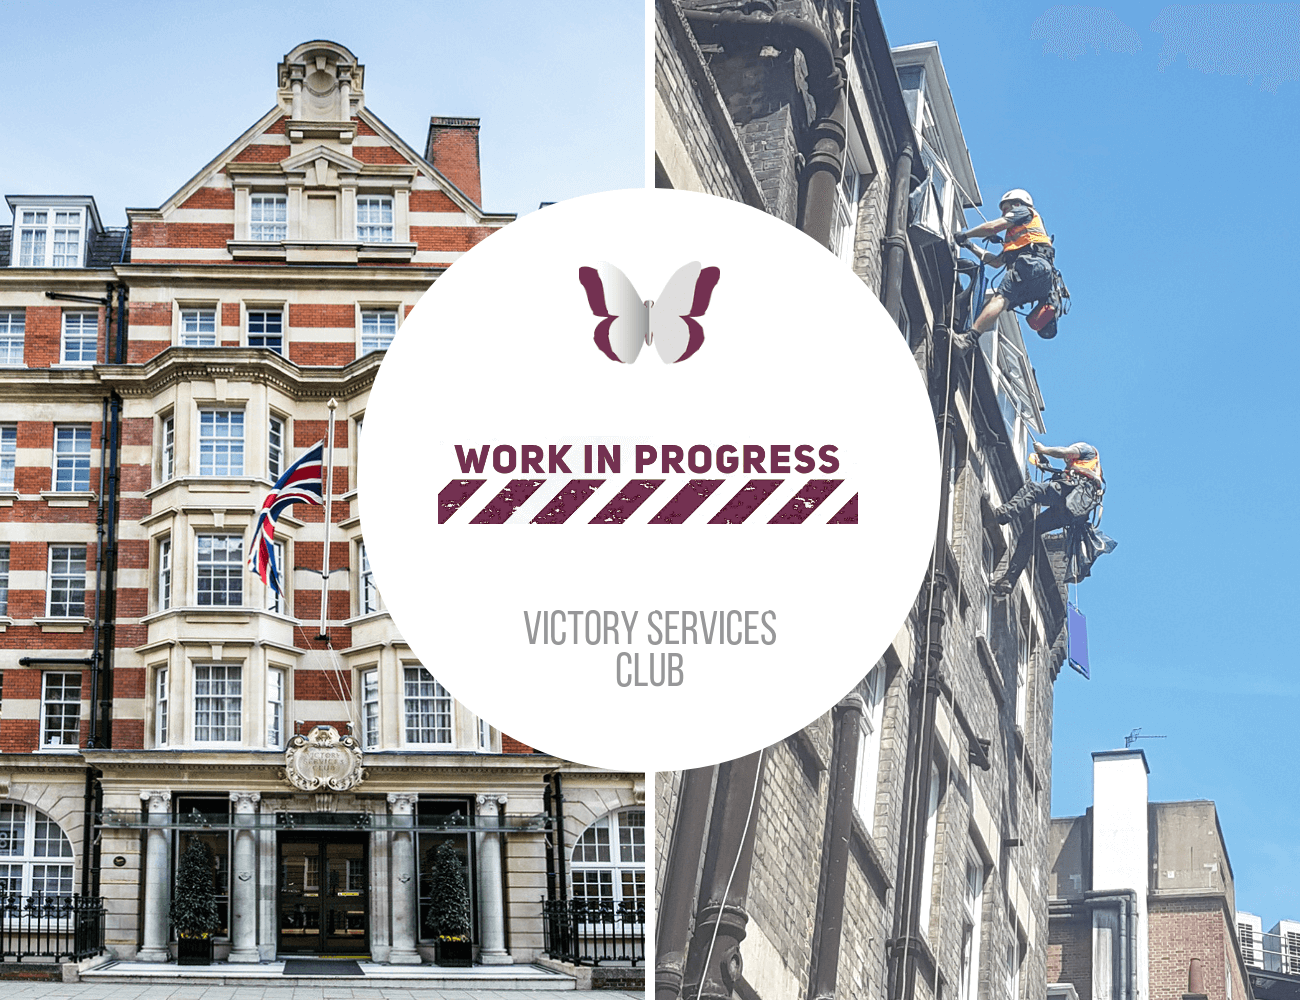 WORK IN PROGRESS: THE VICTORY SERVICES CLUB